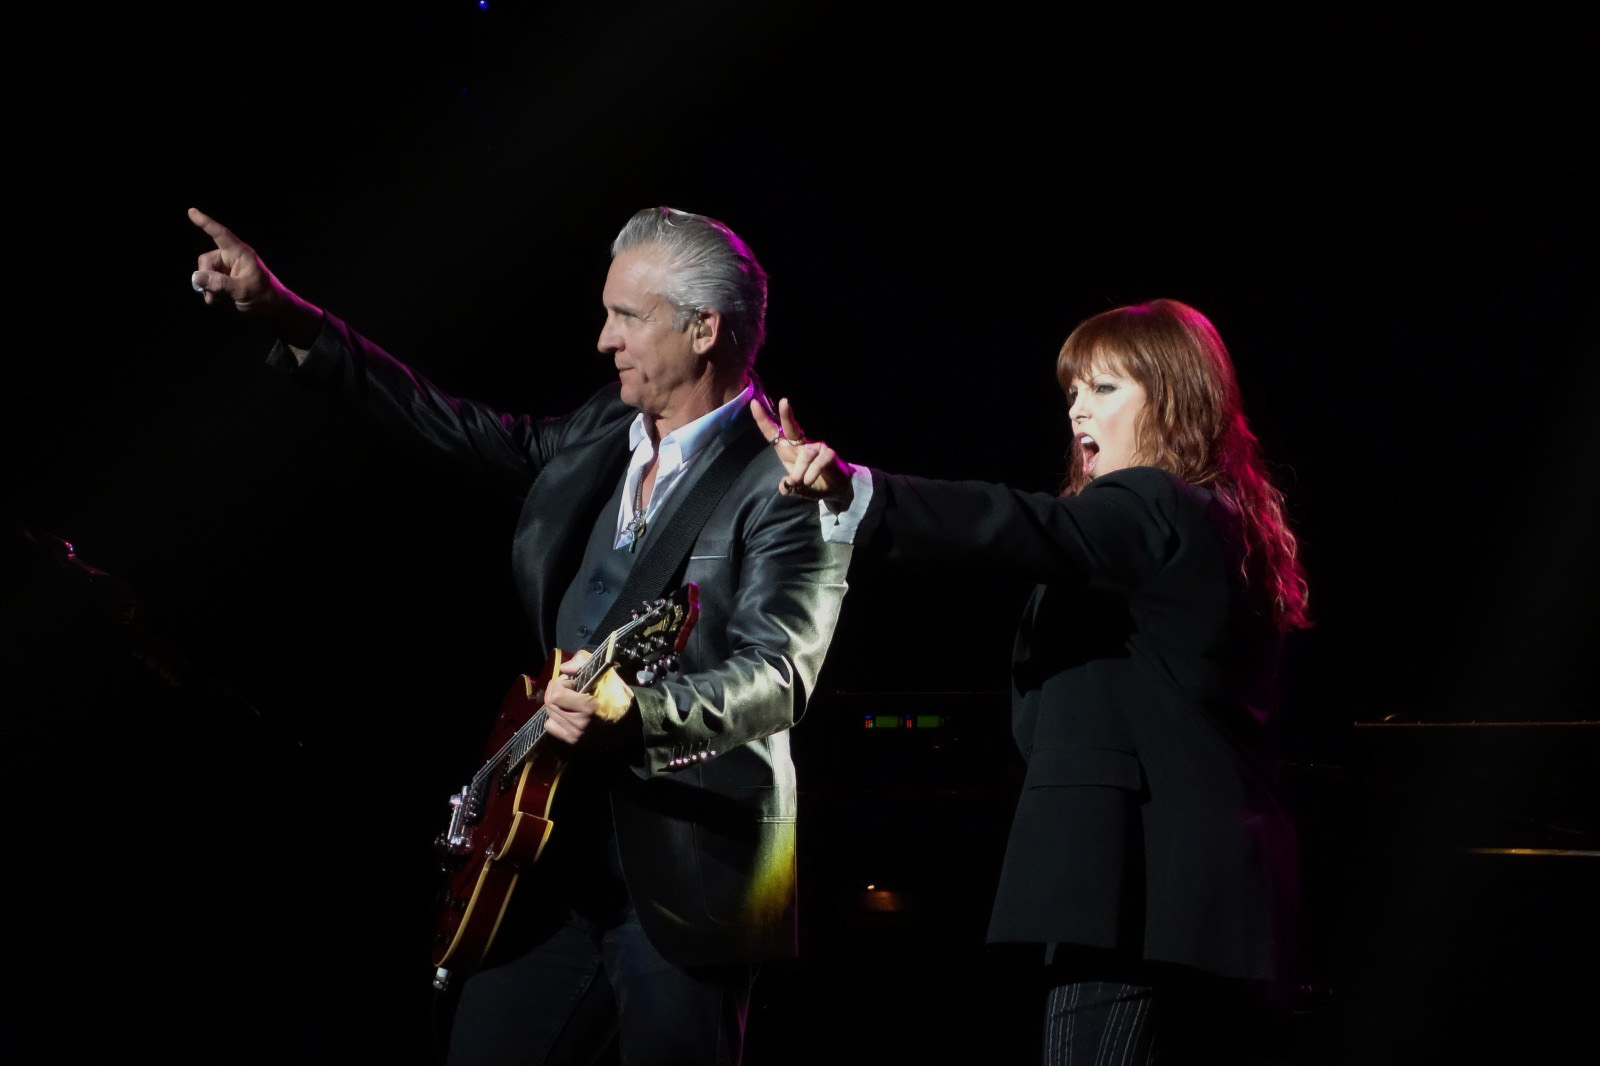 Neil Giraldo, Pat Benatar photo Natalie Jones